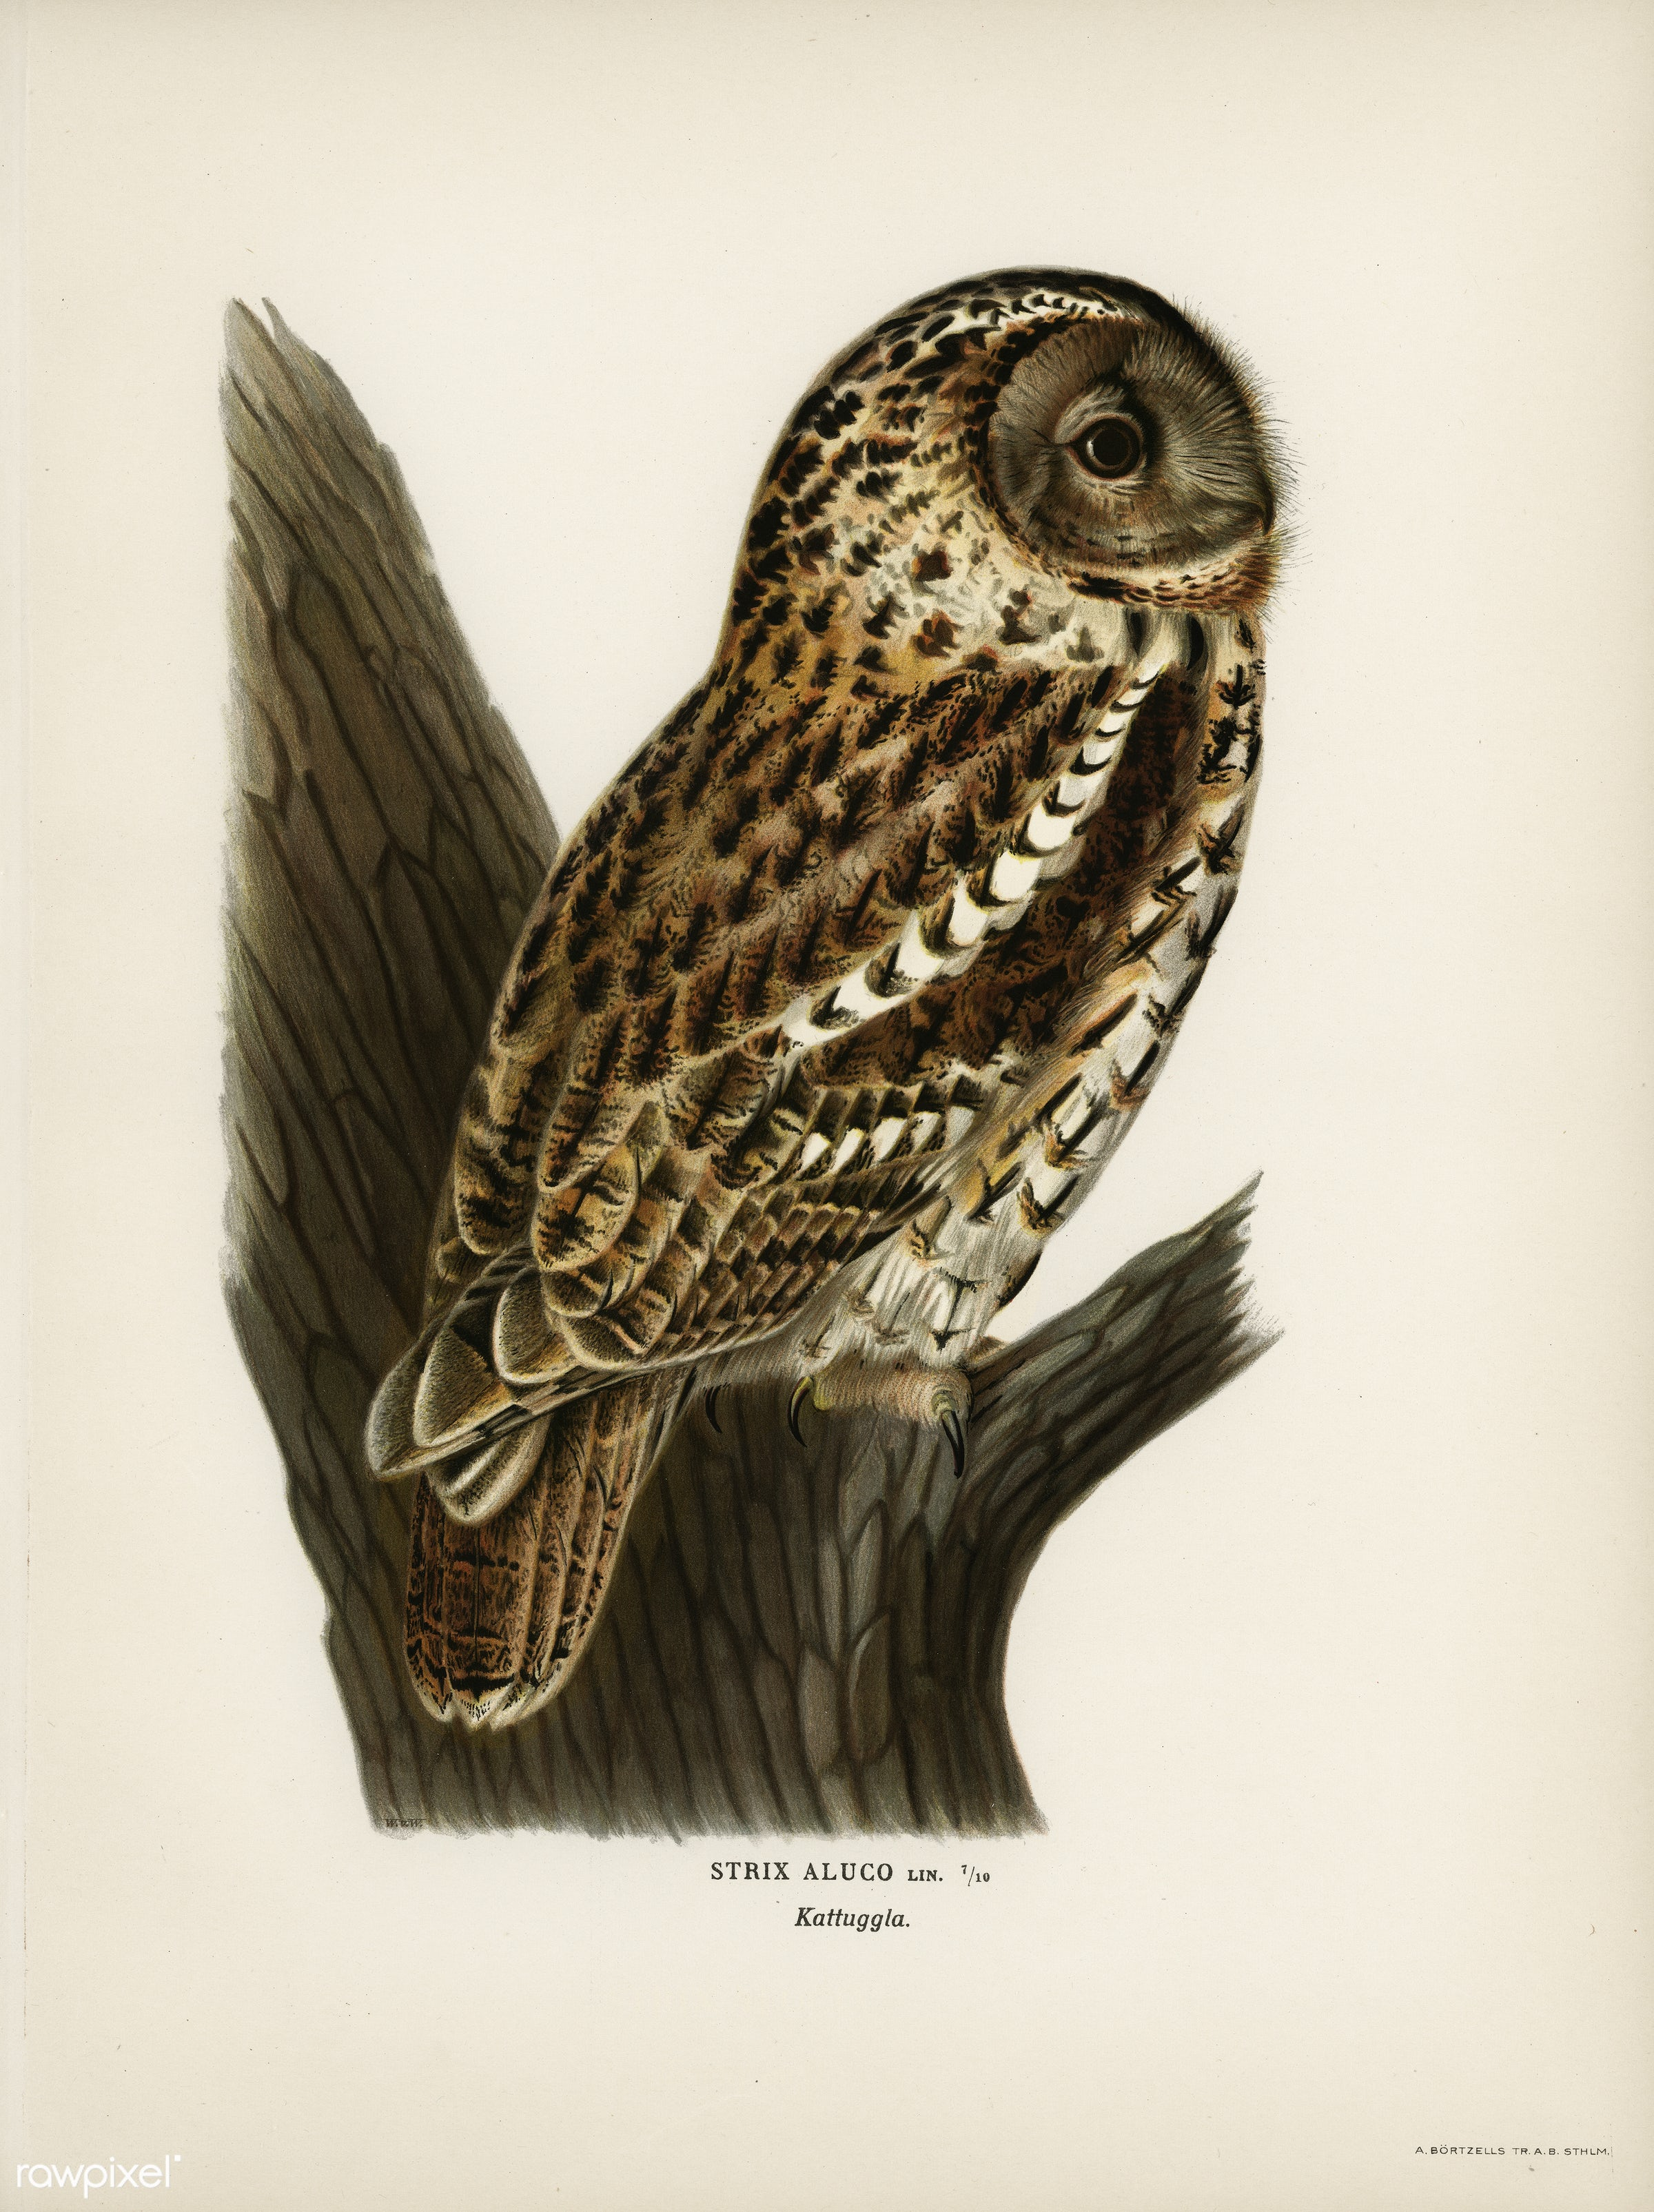 Strix aluco (Tawny owl) illustrated by the von Wright brothers. Digitally enhanced from our own 1929 folio version of...